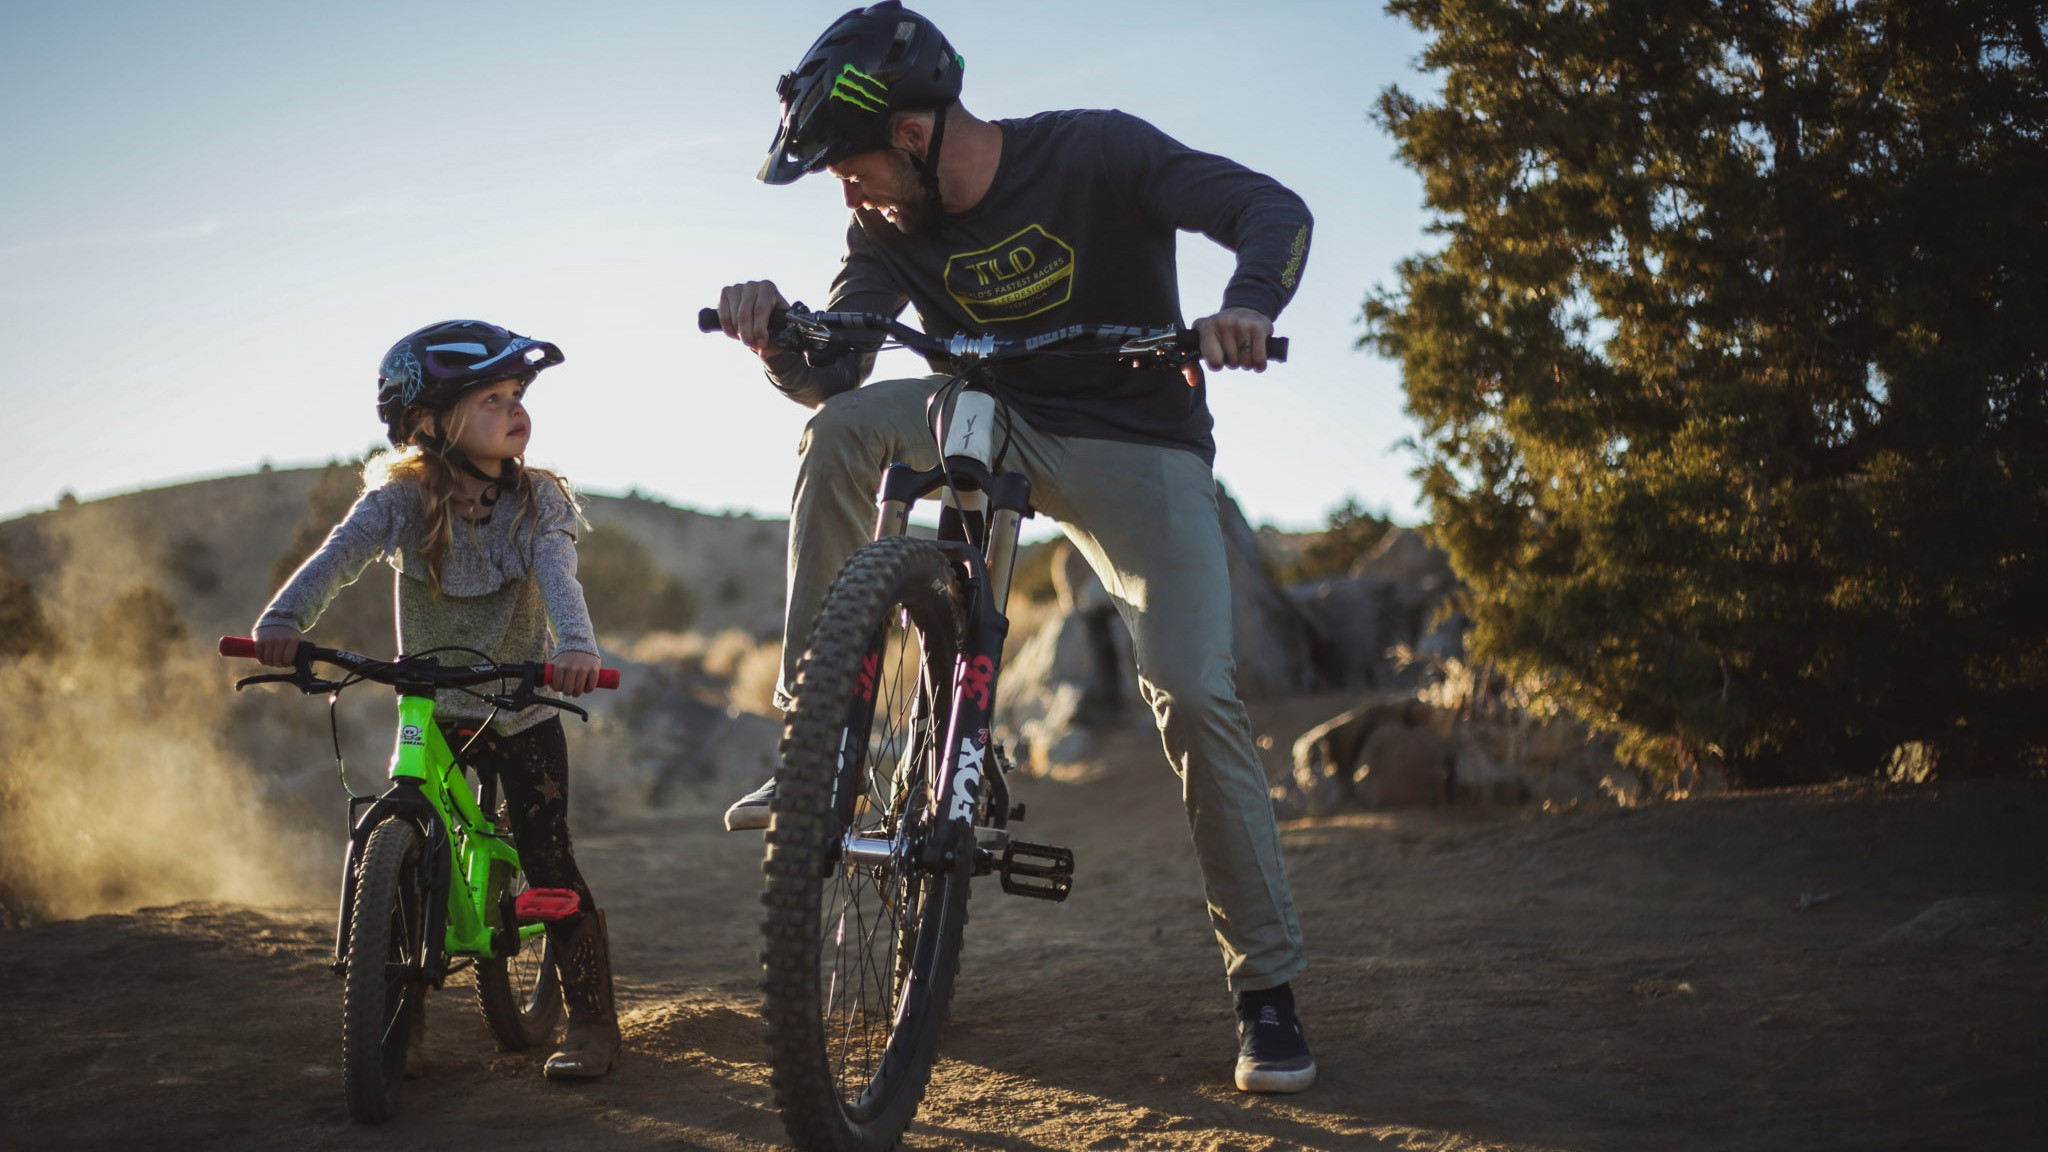 As ridden by Ayla Zink, pro-freerider Cam Zink's daughter